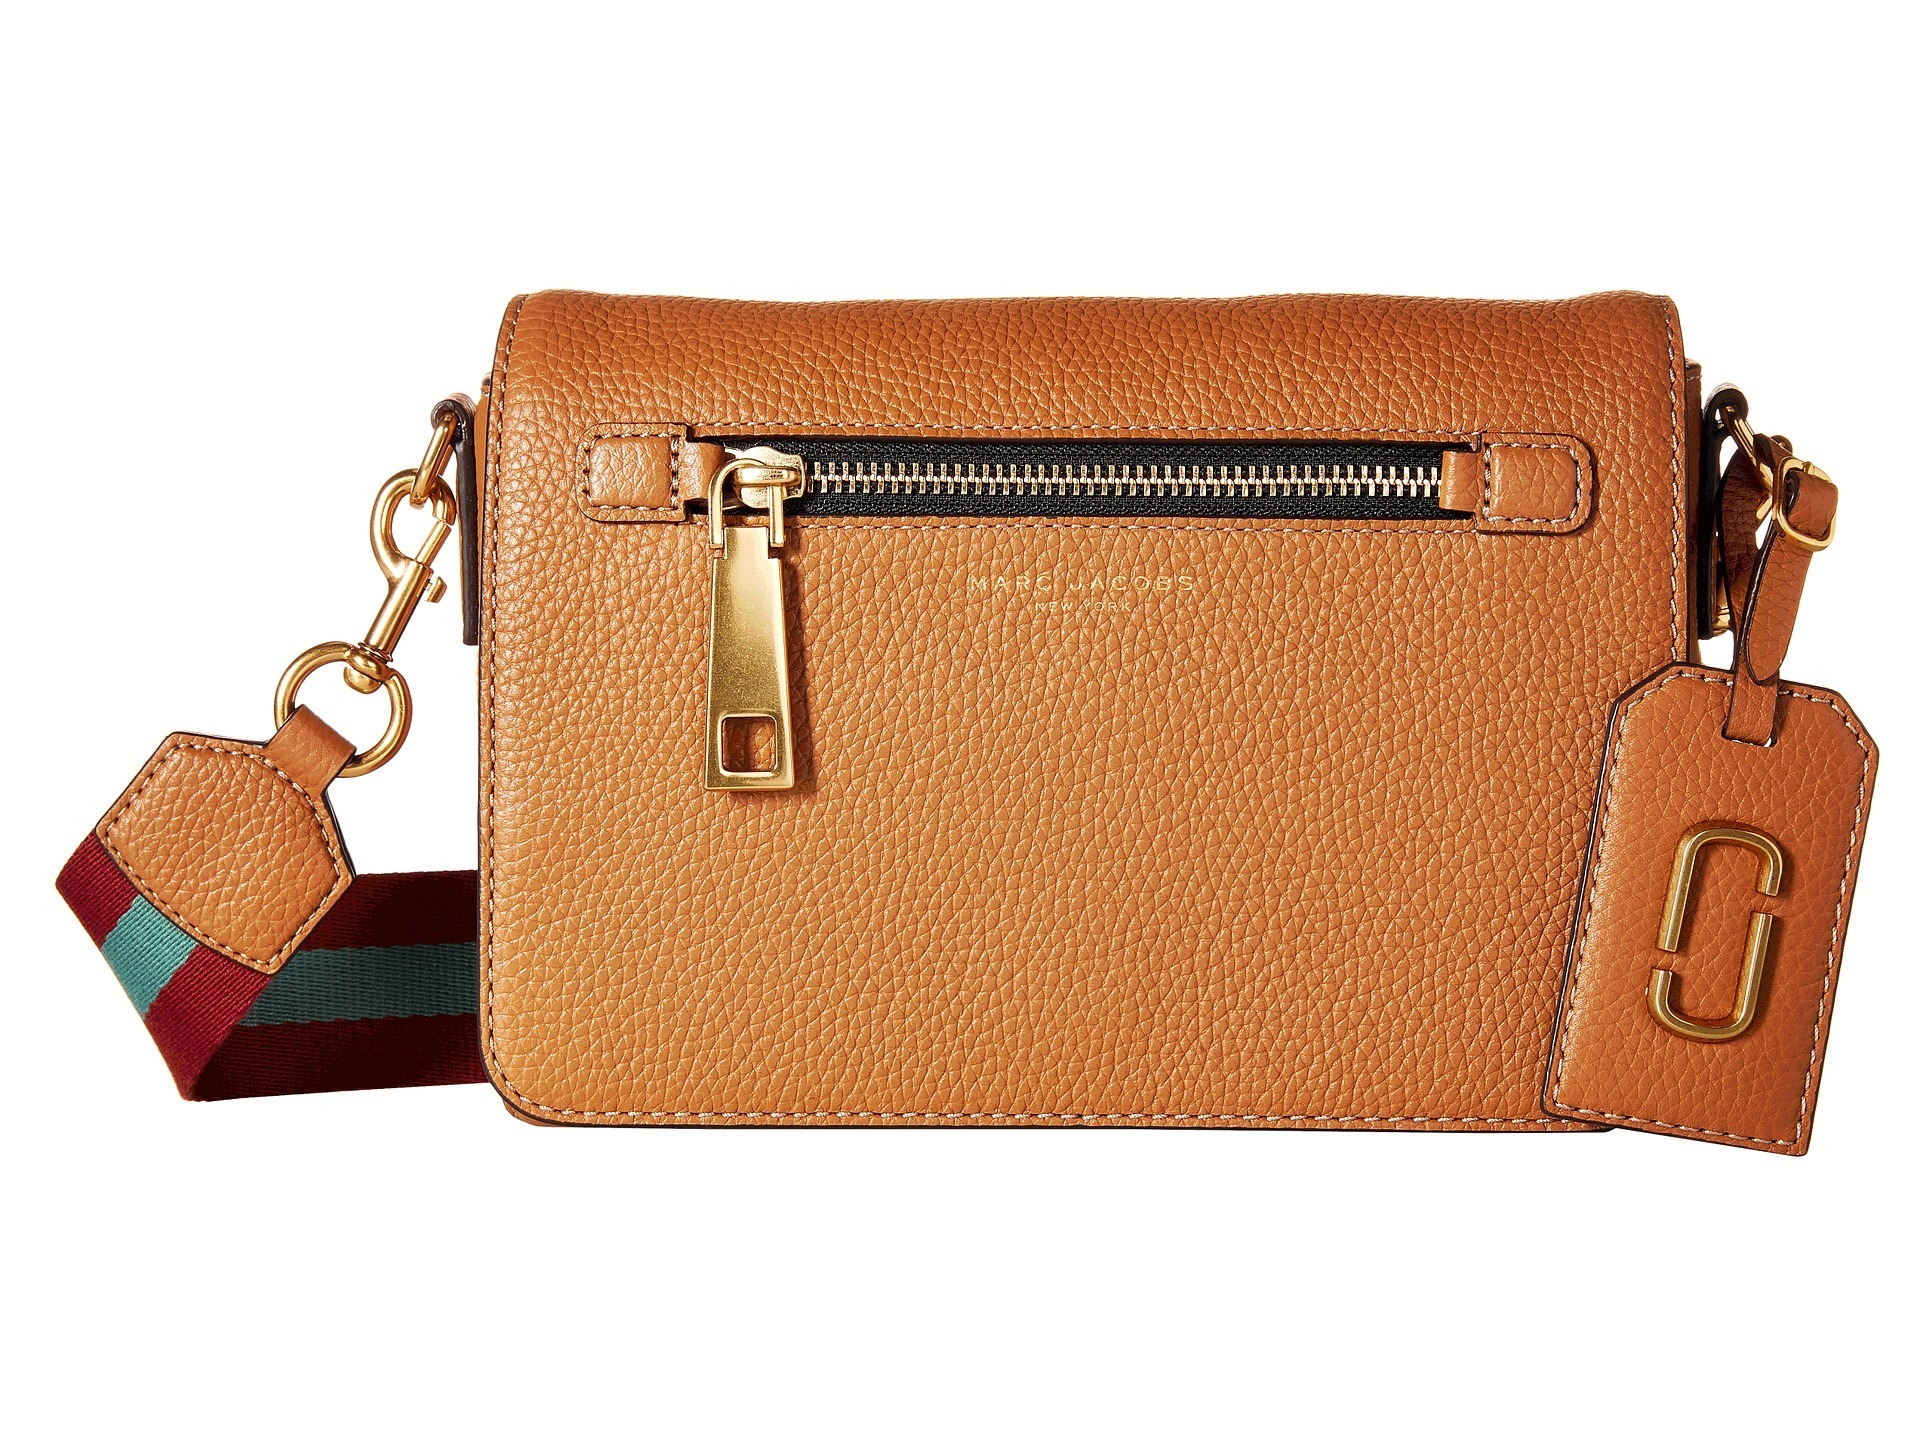 MARC JACOBS 正規品 大人気Gotham Small Shoulder B 送料無料